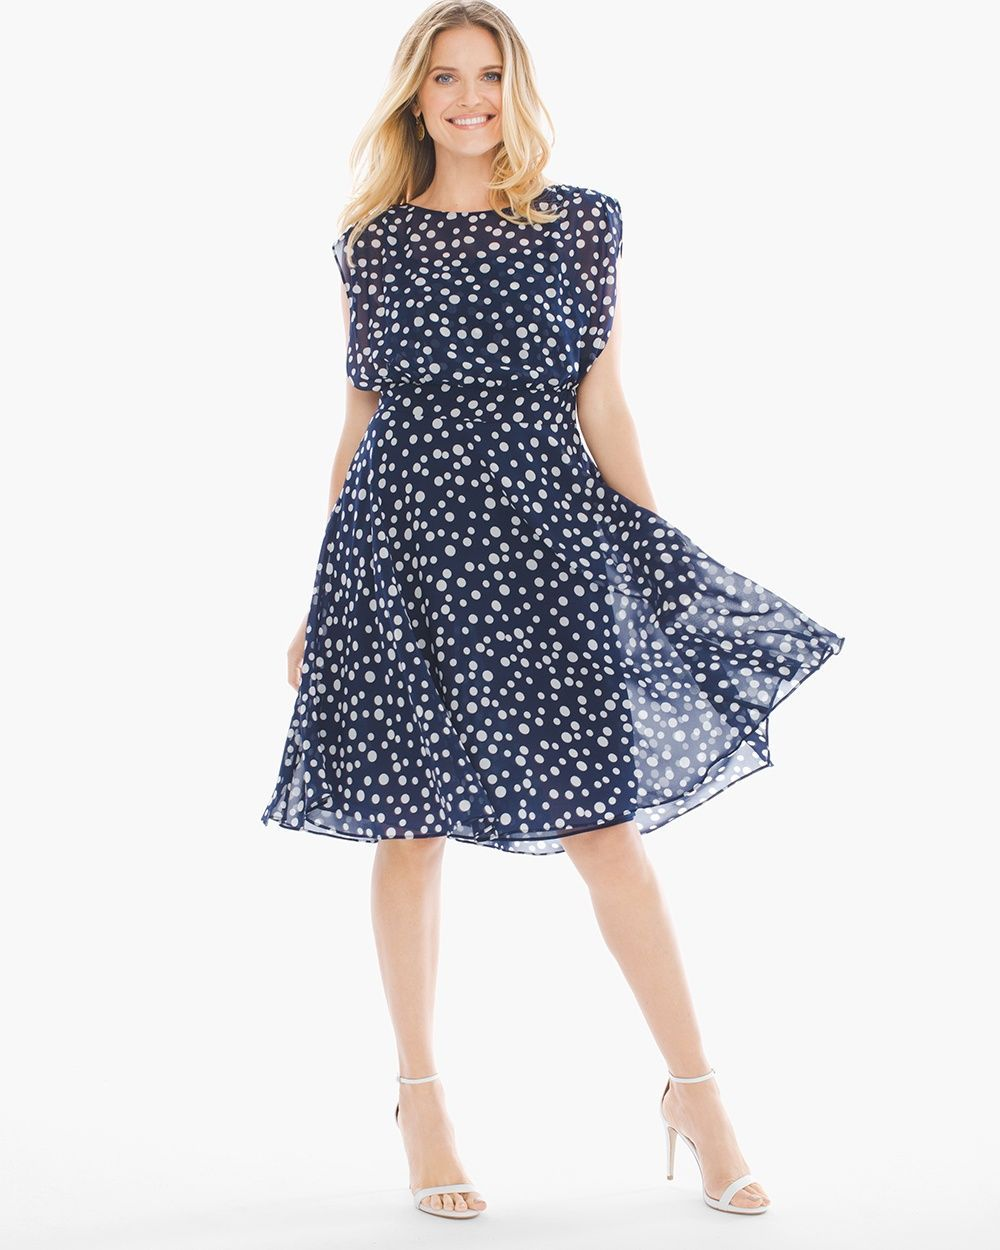 470789f5f54 Chico s Women s Polka Dot Fit-and-Flare Dress